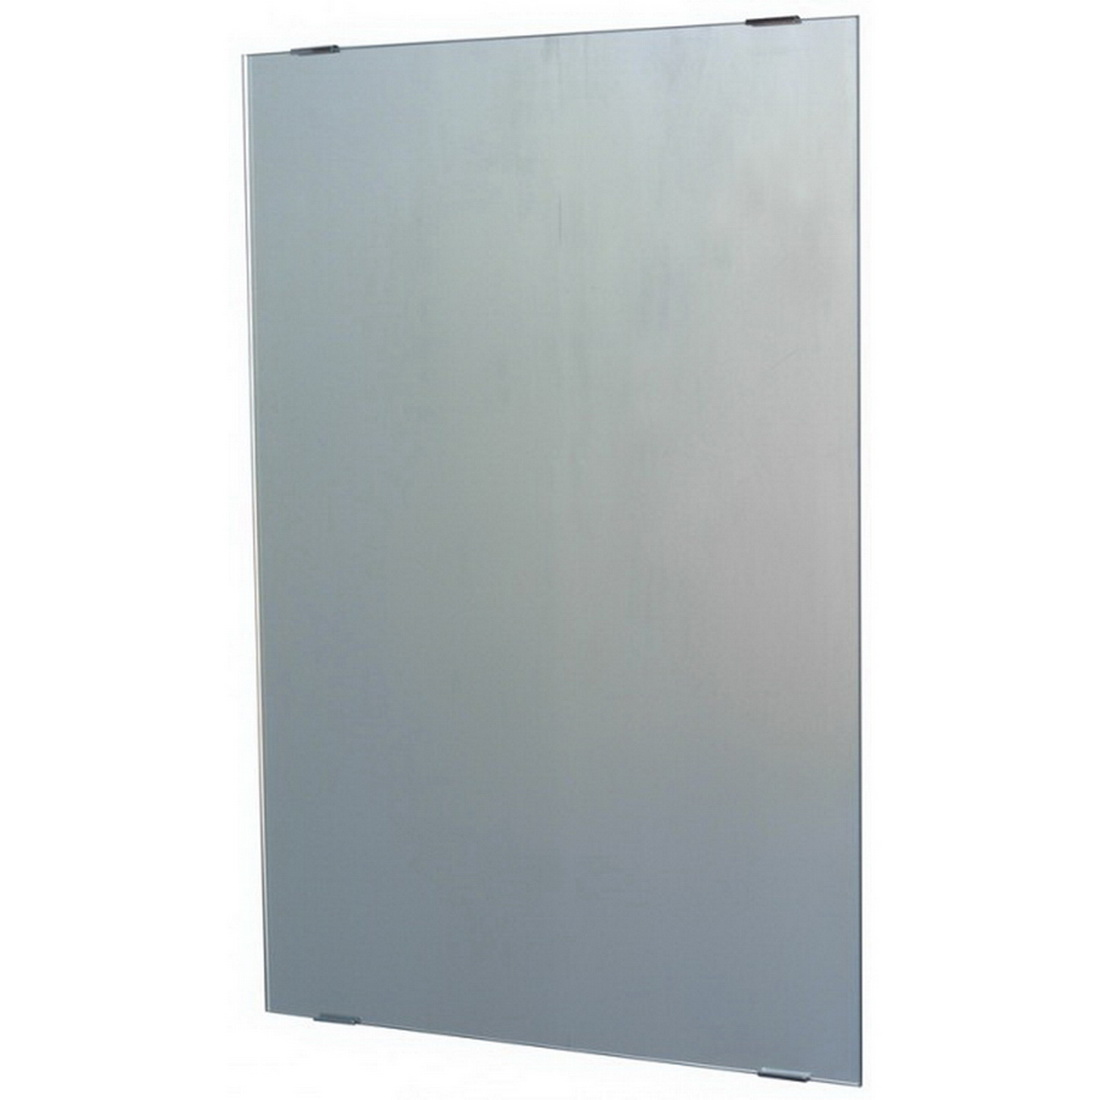 Trendy Mirror Mirrox Polished Edge Mirror with Clips 600 x 400 mm 2416PEM